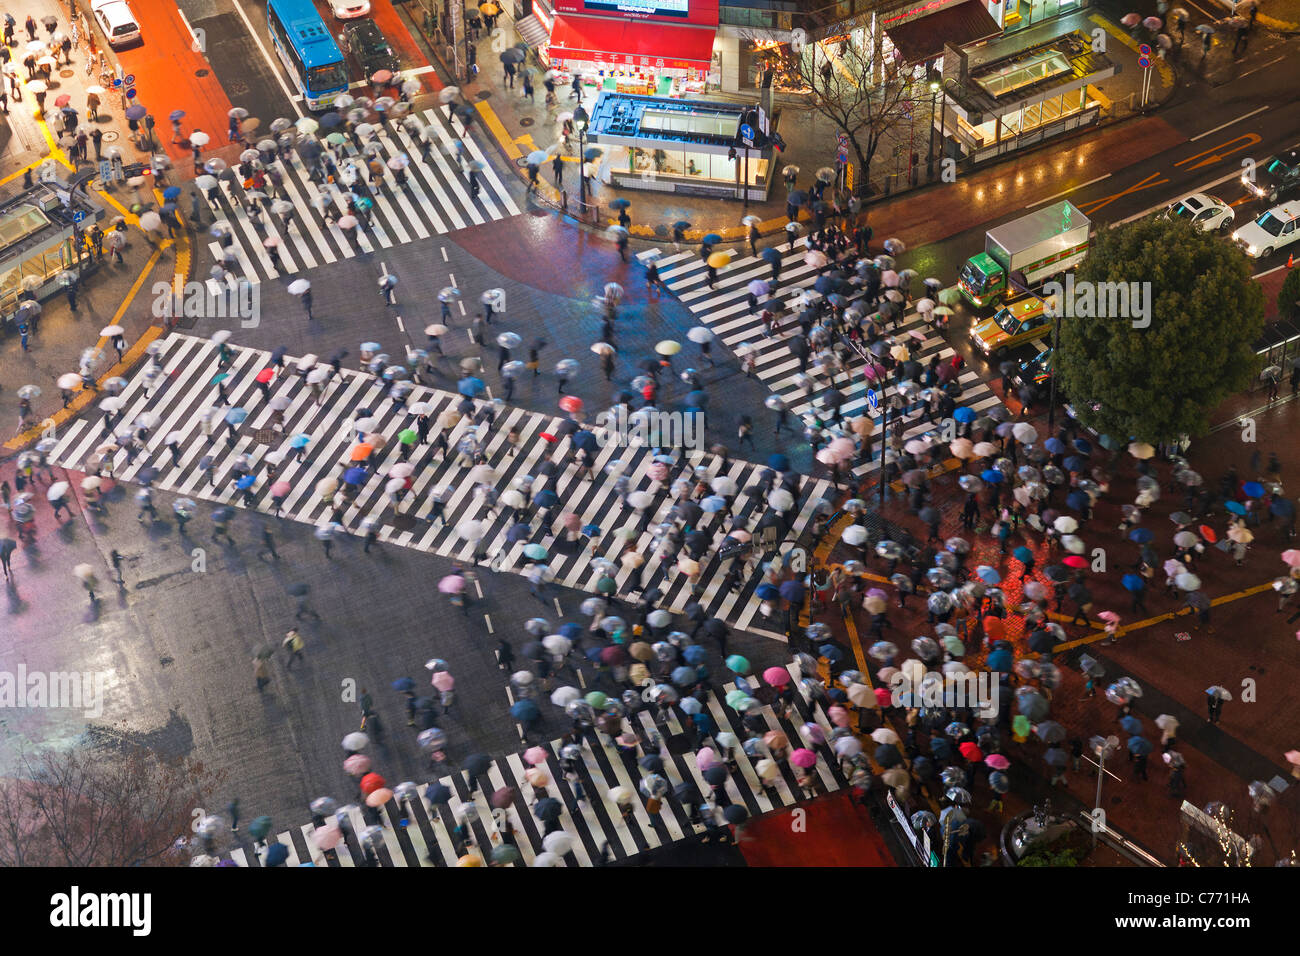 Asia, Japan, Tokyo, Shibuya, Shibuya Crossing - crowds of people crossing the famous crosswalks at the centre of Stock Photo